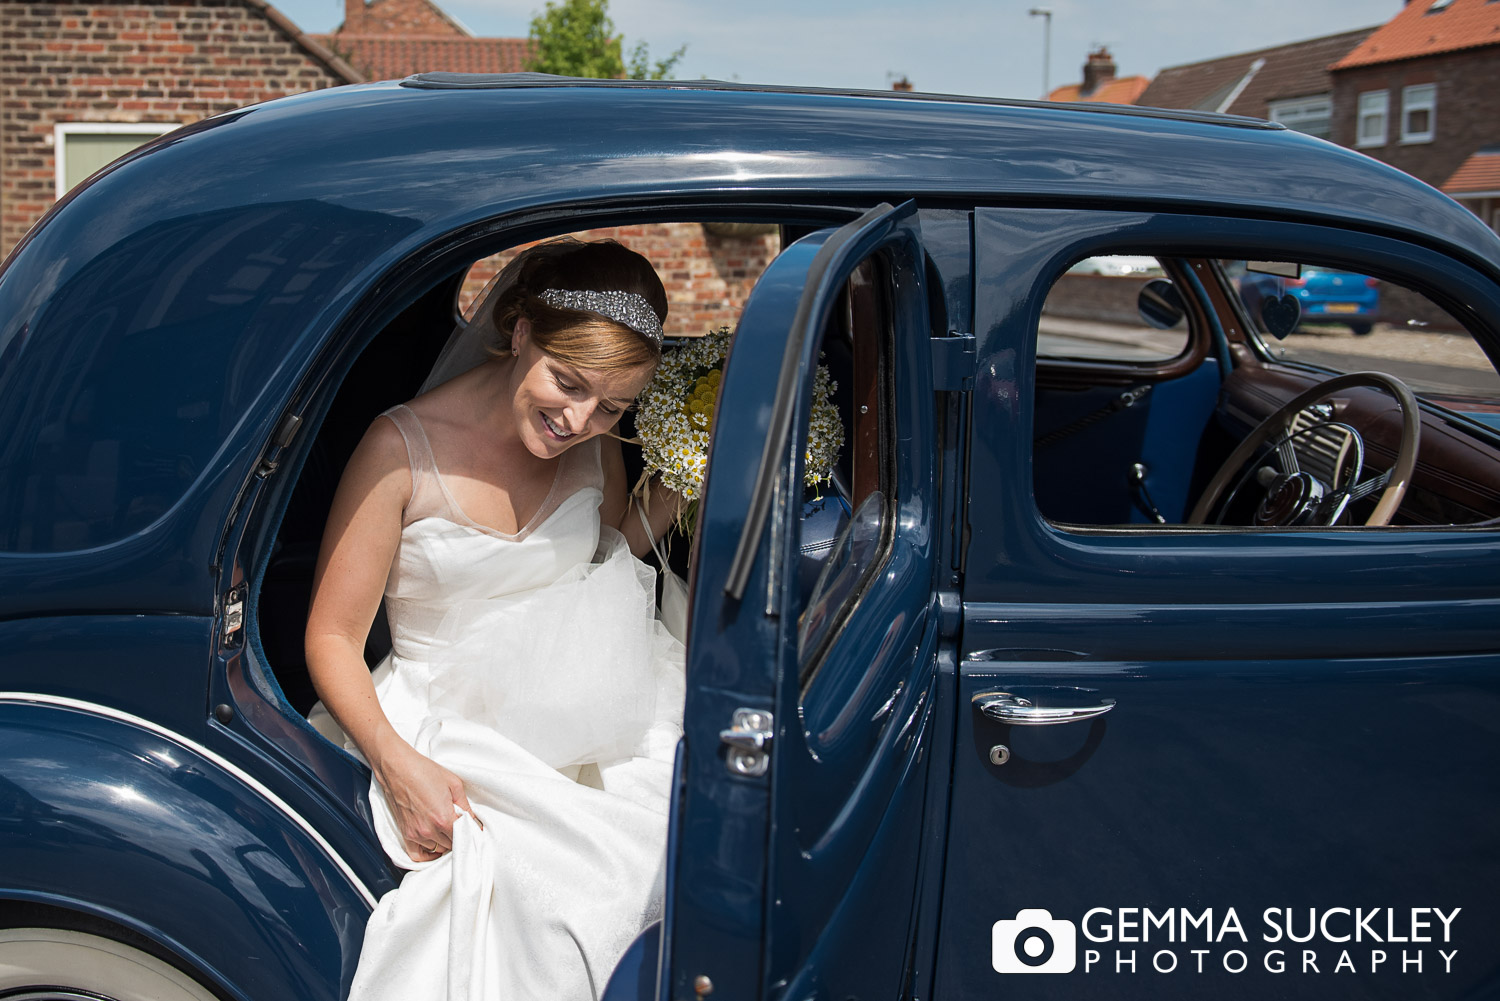 Bride getting out of the car for her wedding in Driffield